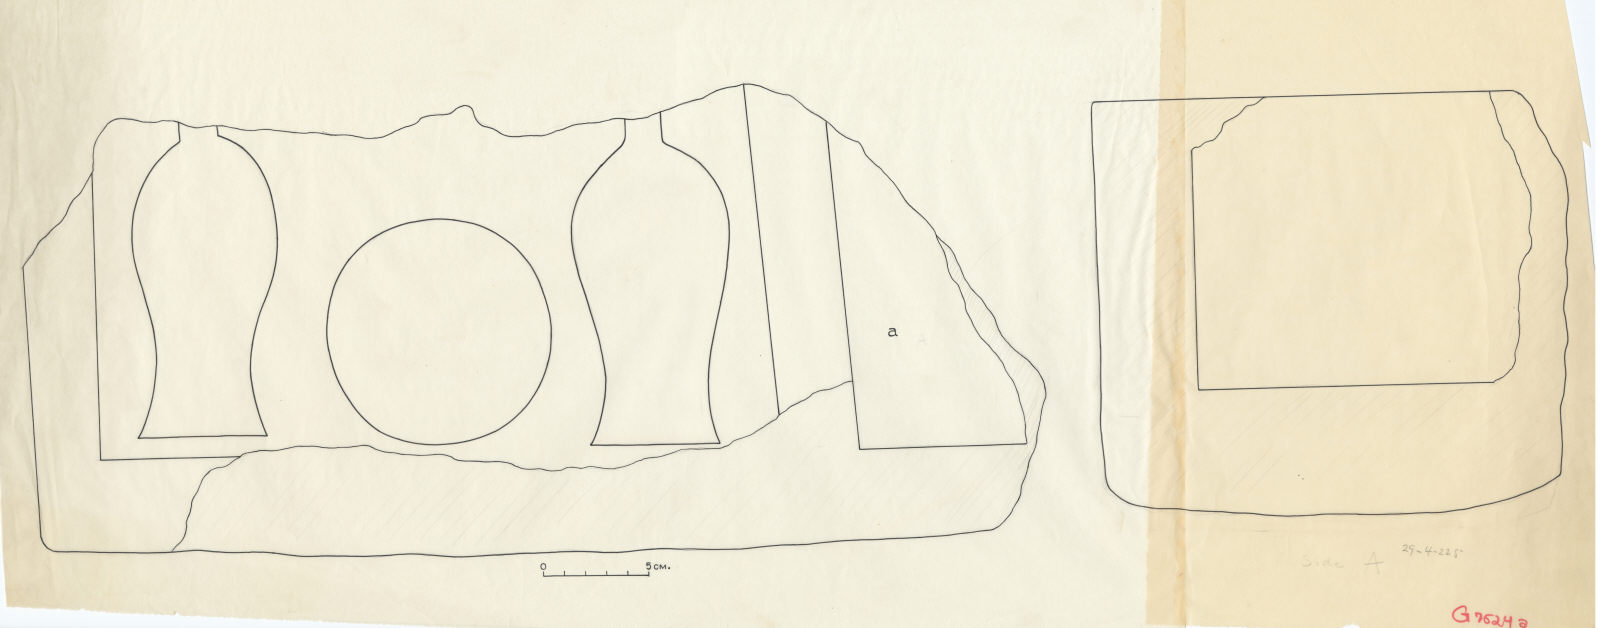 Drawings: G 7524, Shaft A: offering stone